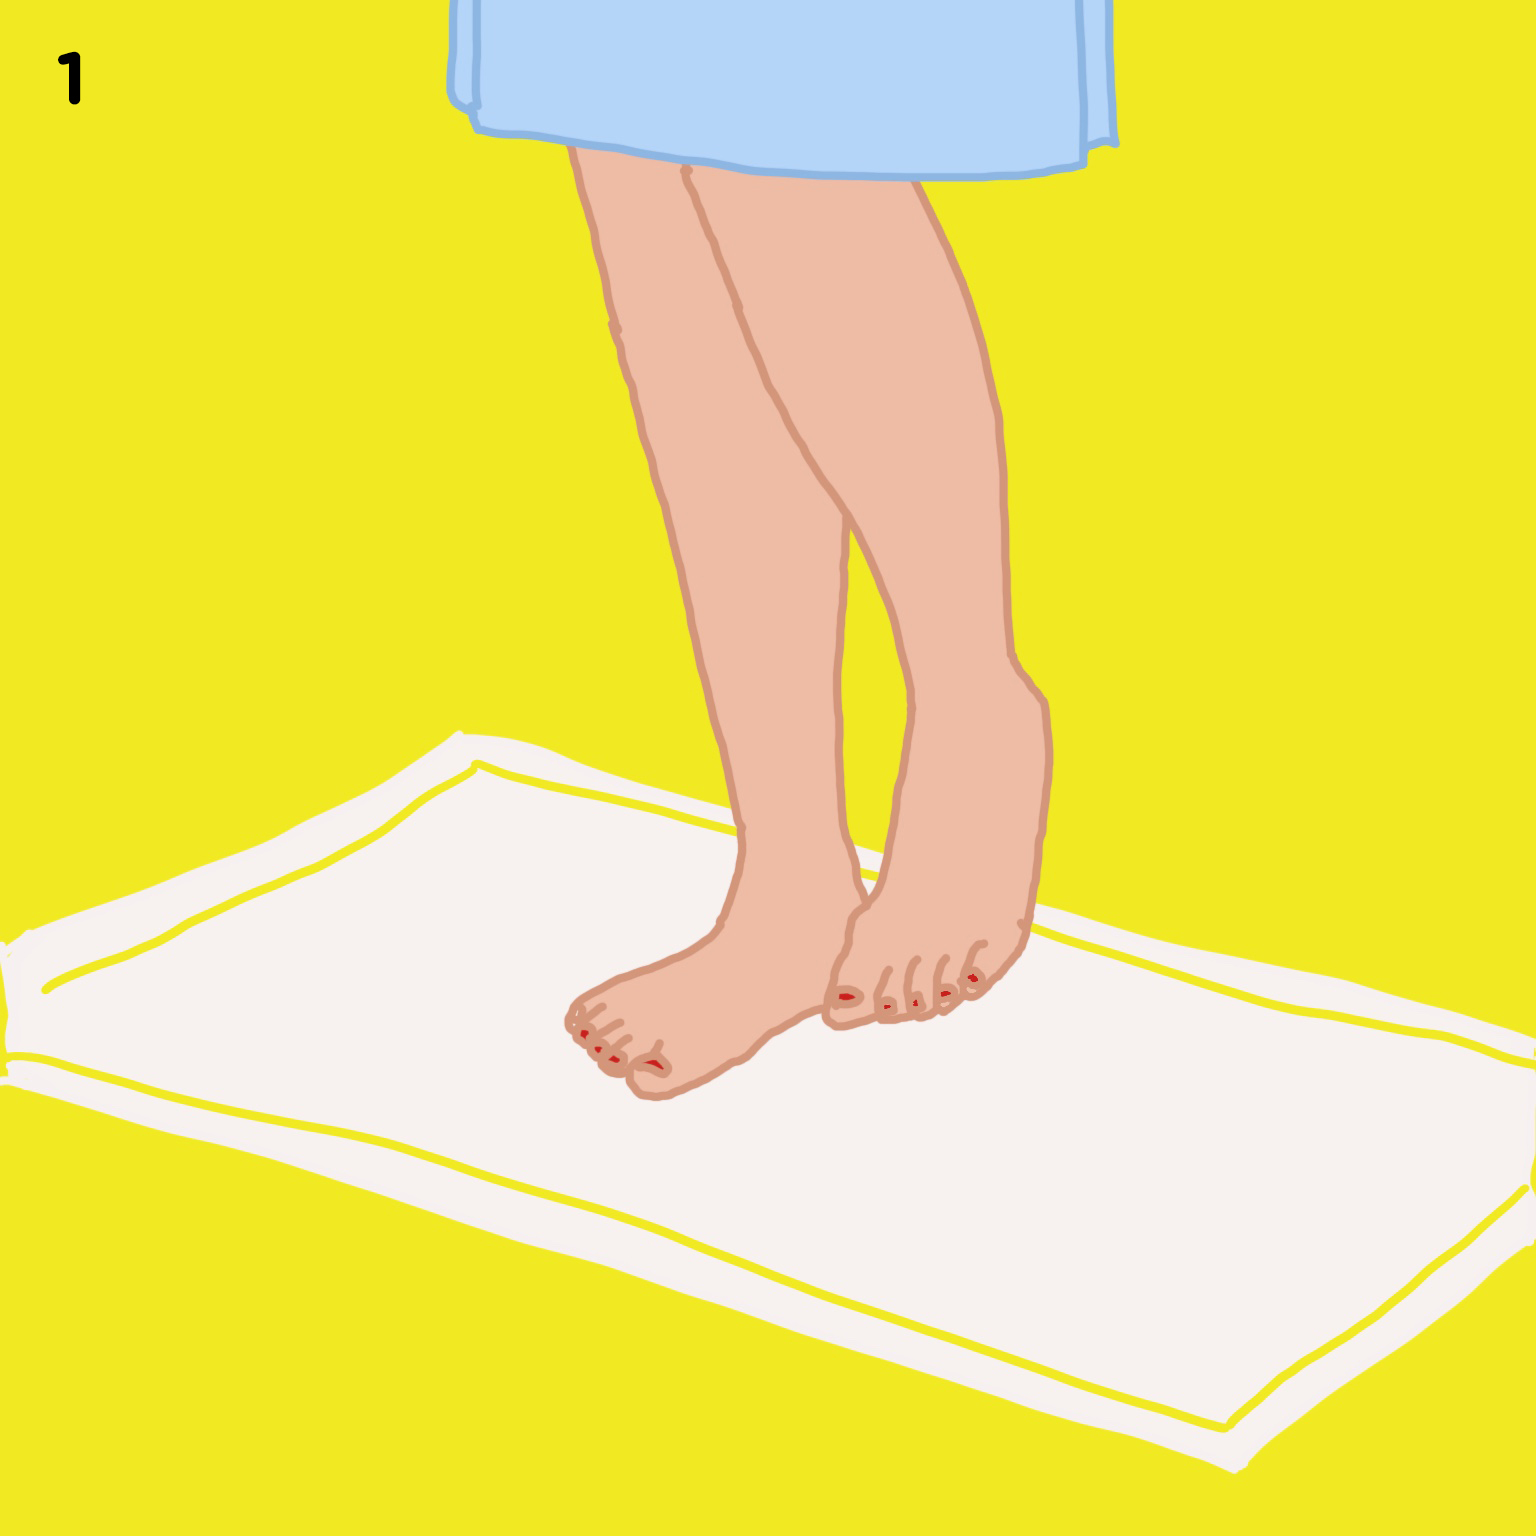 1. STAND ON BATH MAT   Stand on a bath mat in your bathroom. You'll want to be standing on something just in case a few drops of oil fall on the floor.